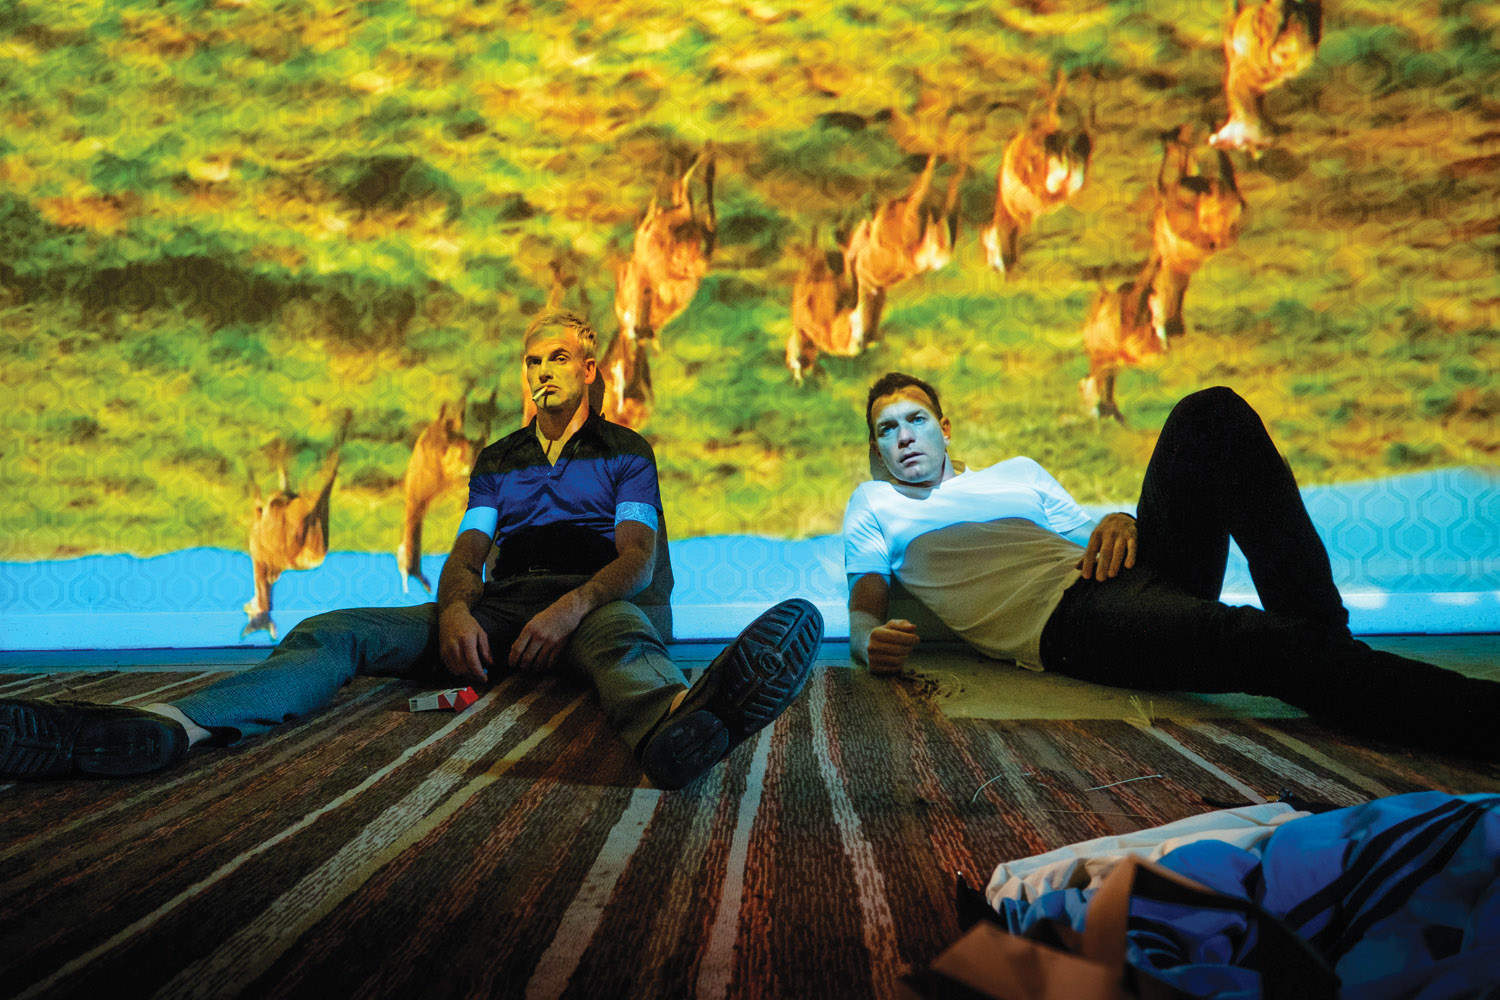 Can Danny Boyle once again capture the national mood with T2 Trainspotting?